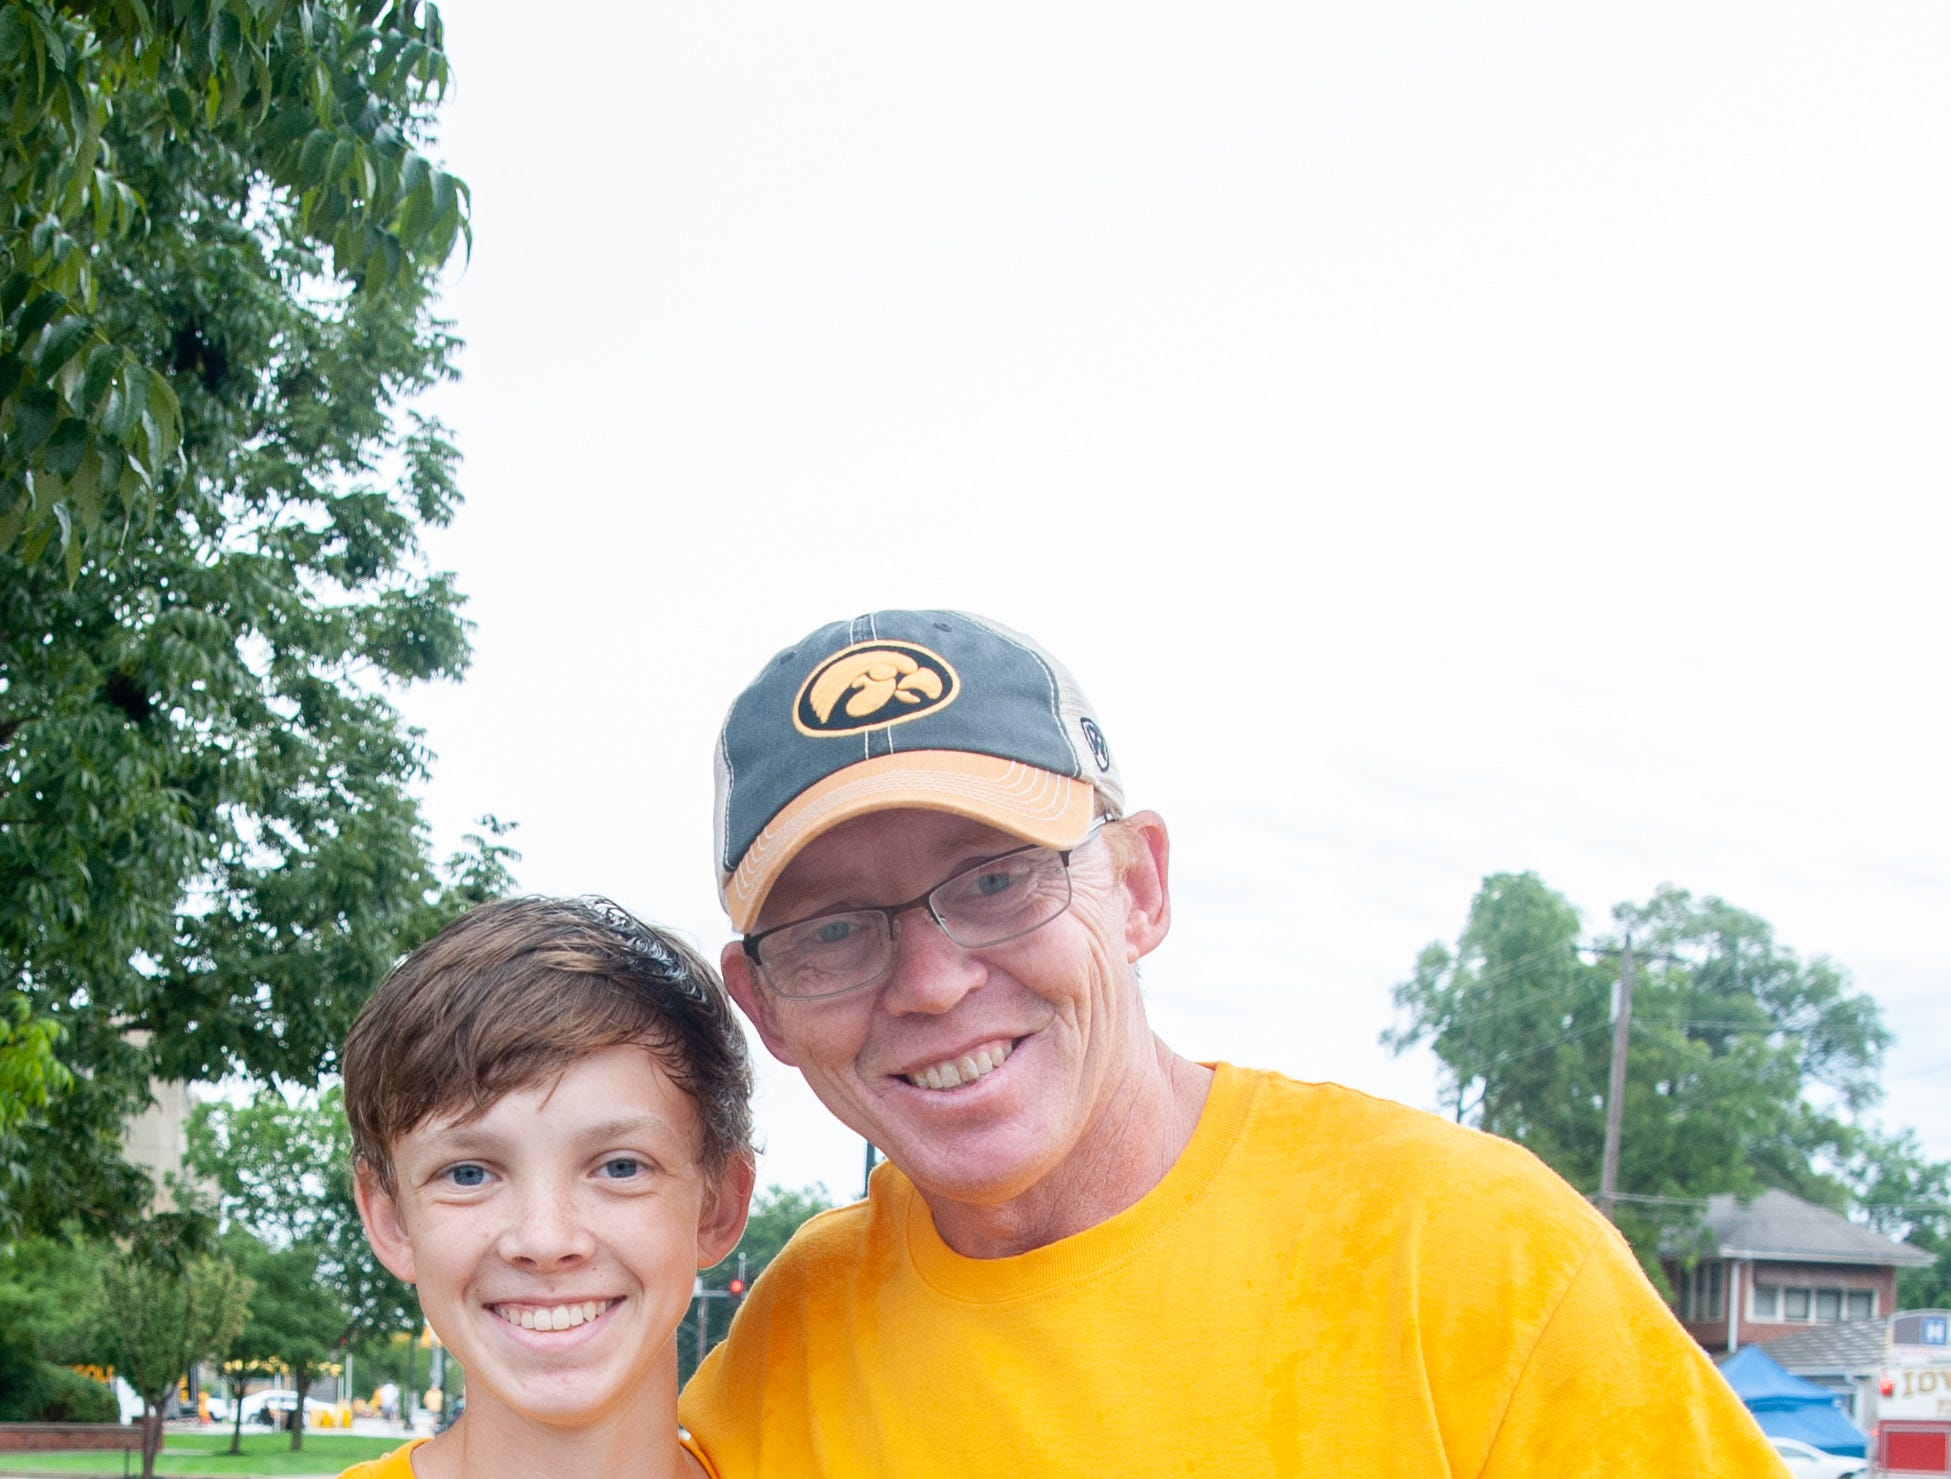 Joey, 14, (left), and John Ward, 52, of Springville, Saturday, Sept. 1, 2018, while tailgating before the Iowa game against Northern Illinois in Iowa City.